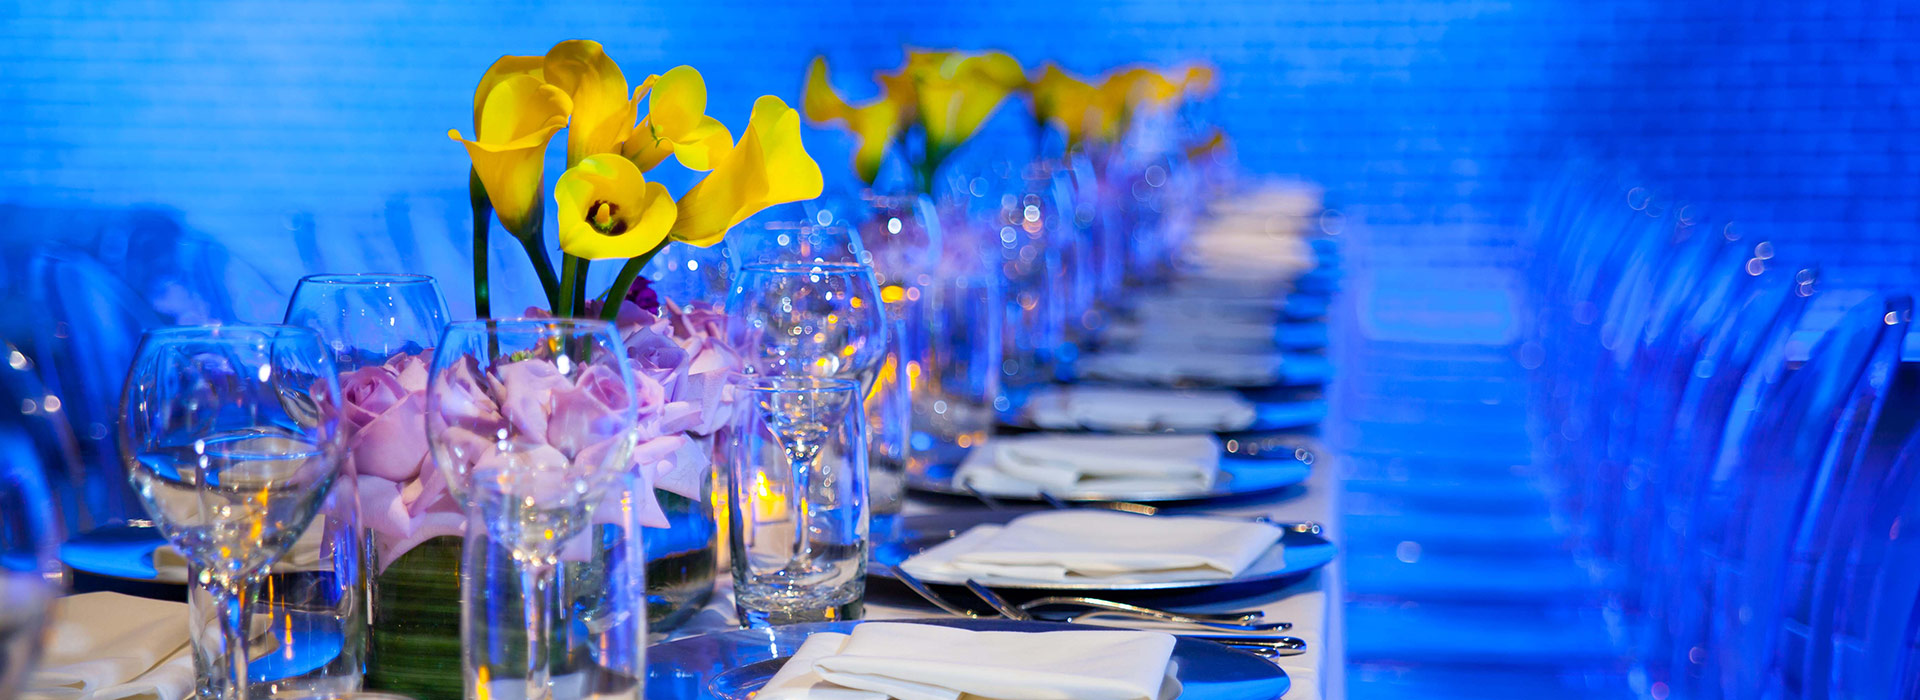 Floral Design and event catering for private NYC events